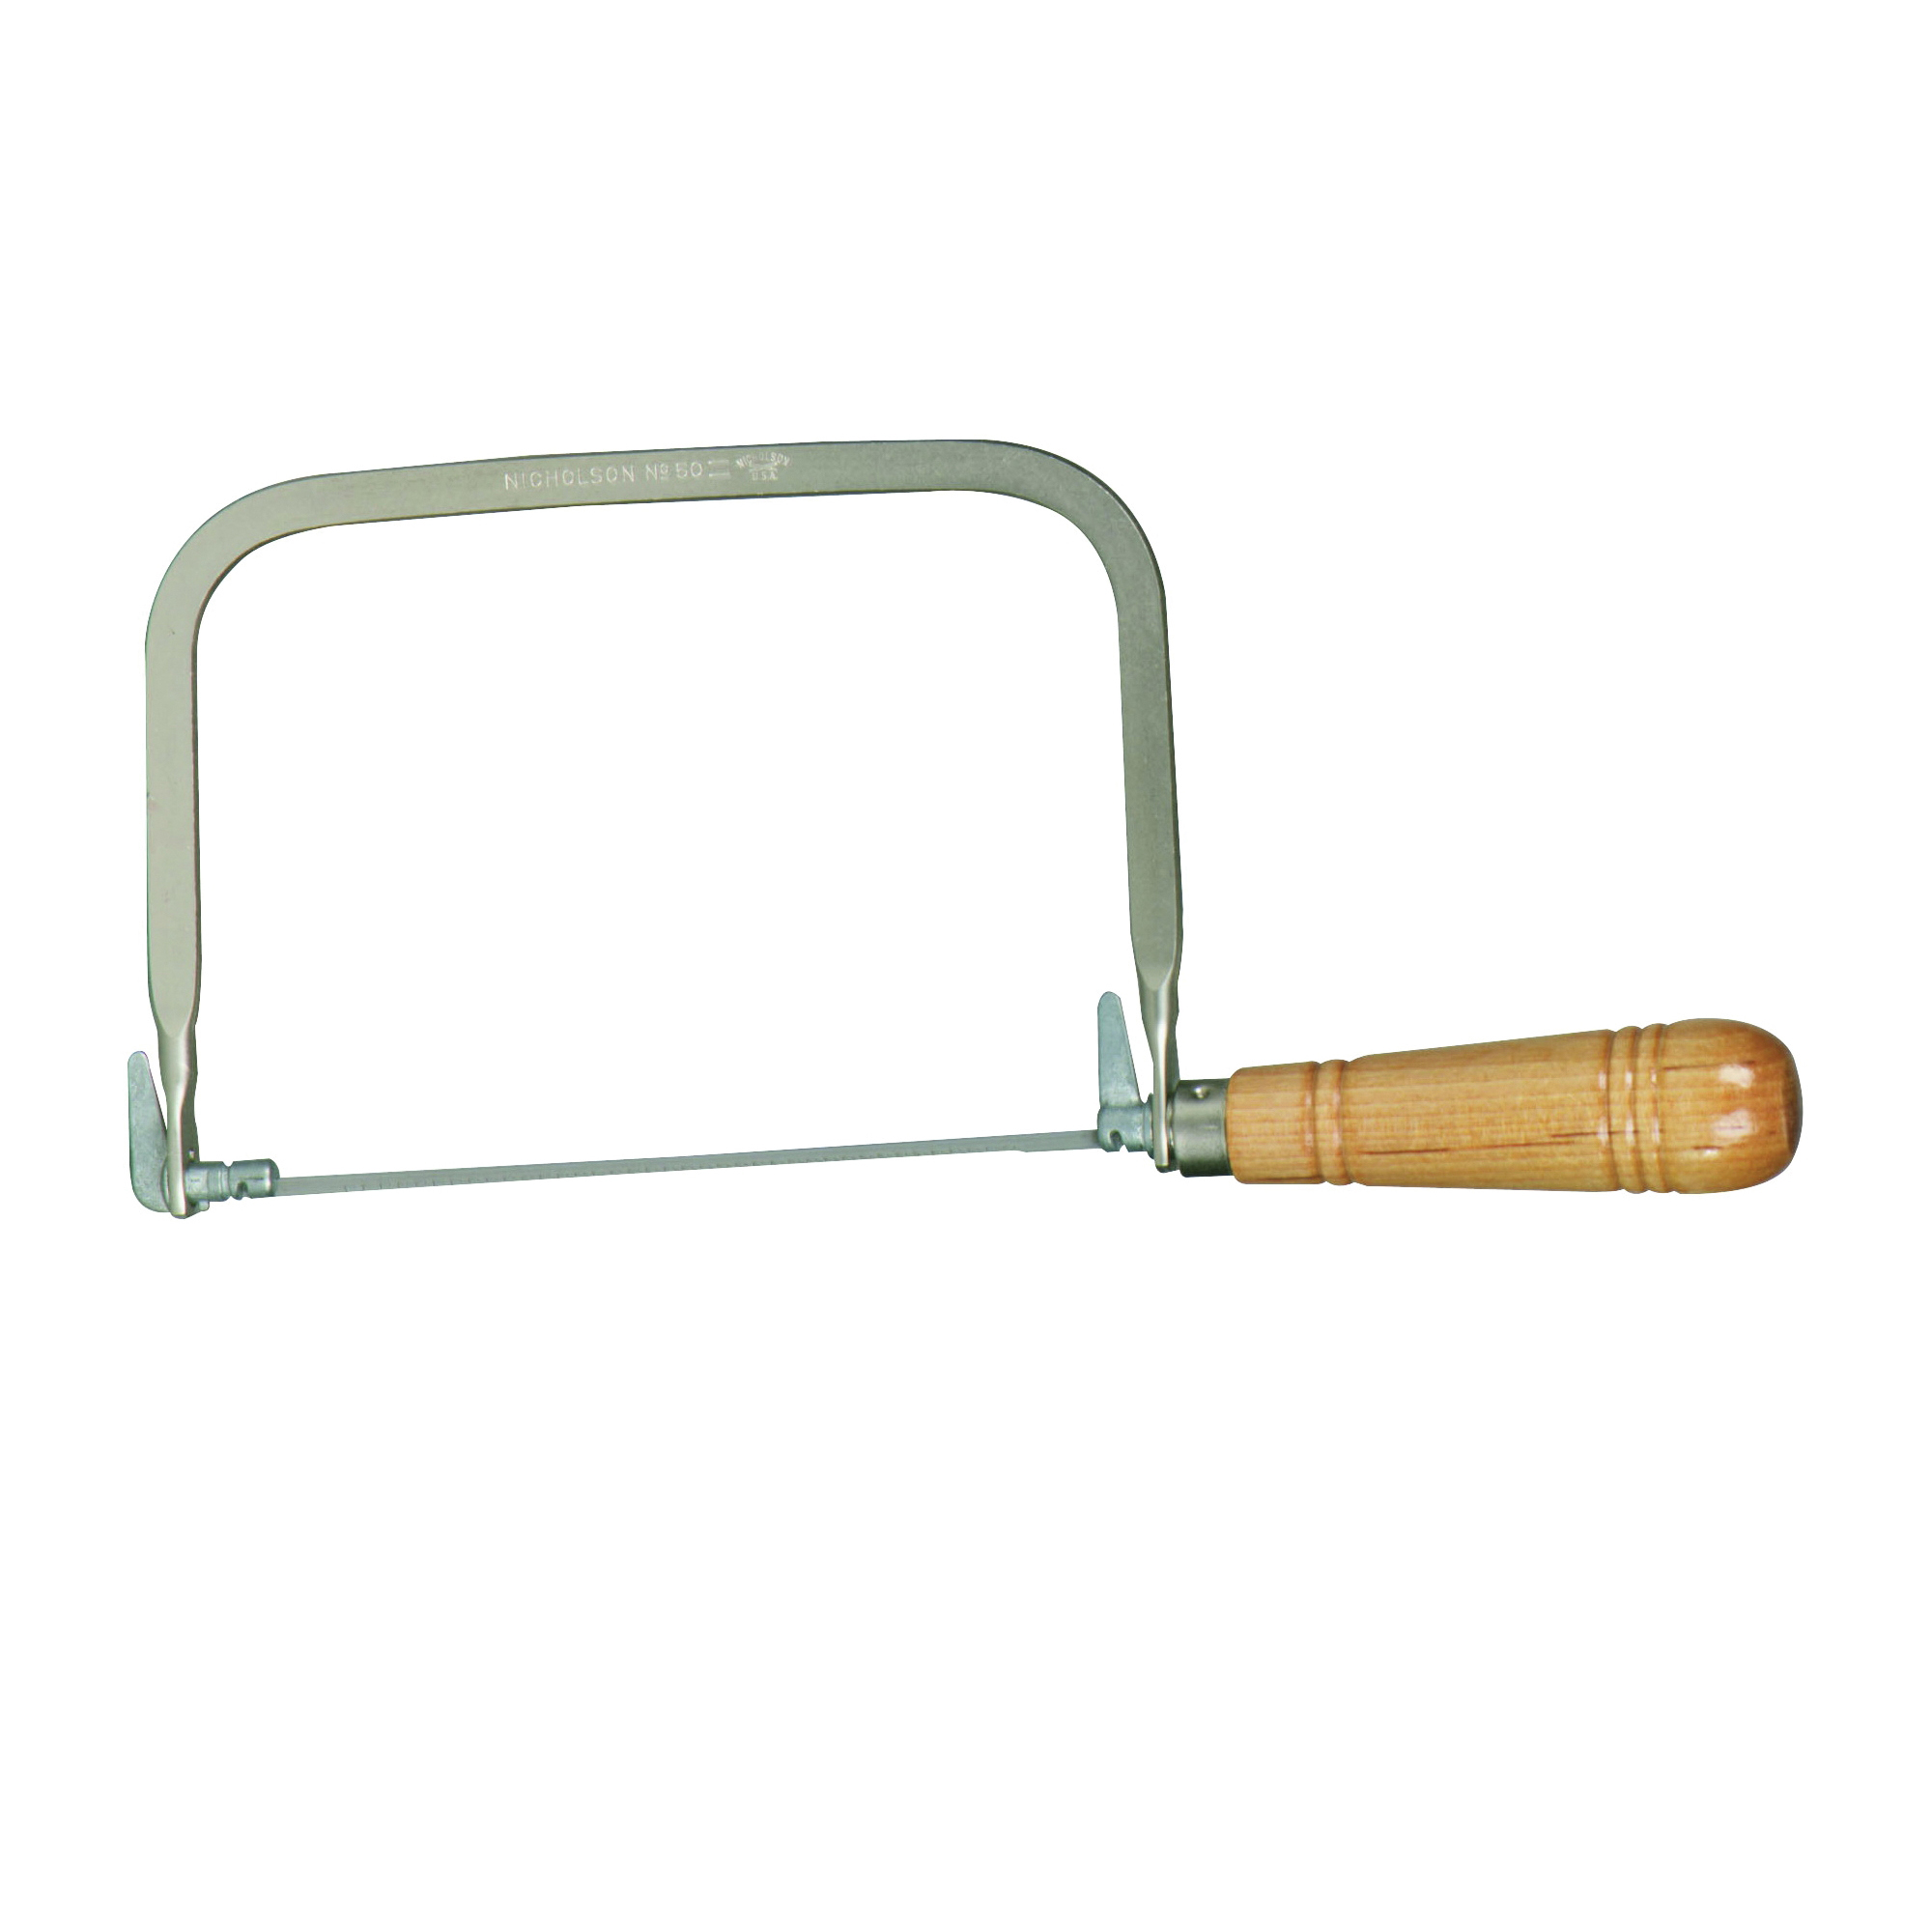 Picture of Crescent Nicholson 80170 Coping Saw, 6-1/2 in L Blade, 15 TPI, Steel Blade, Straight Handle, Wood Handle